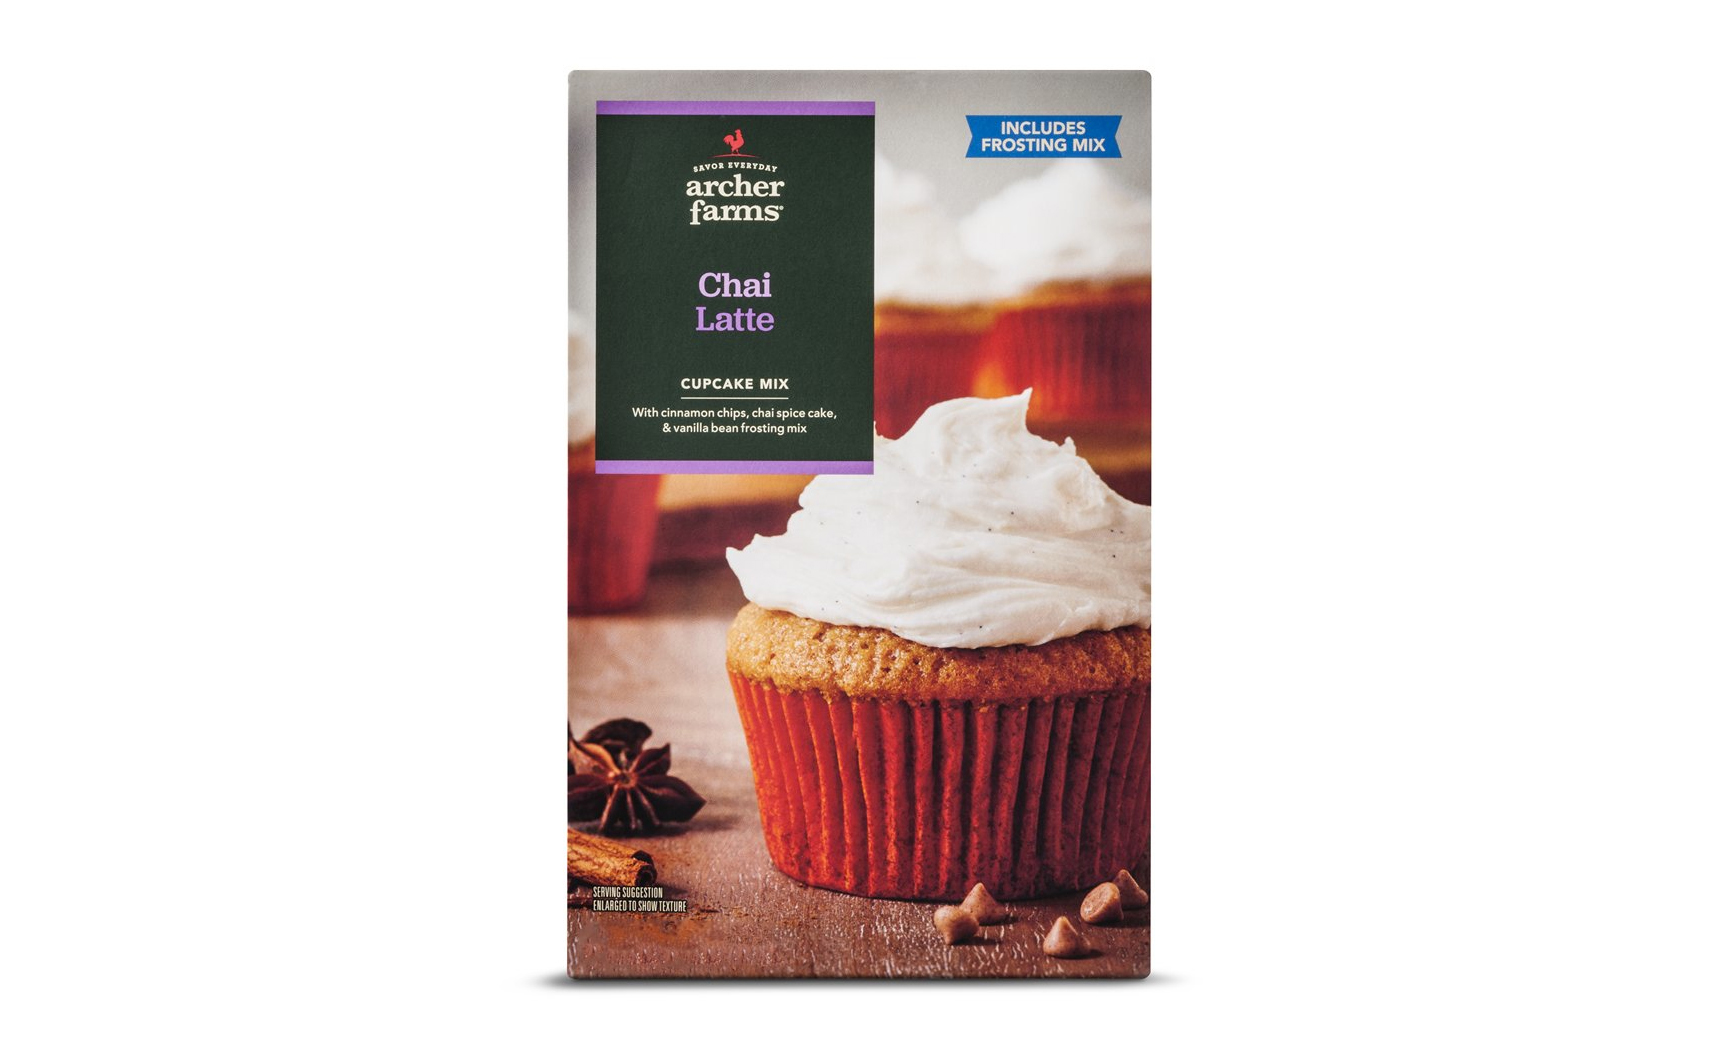 Archer Farms Chai Latte Cupcake Mix